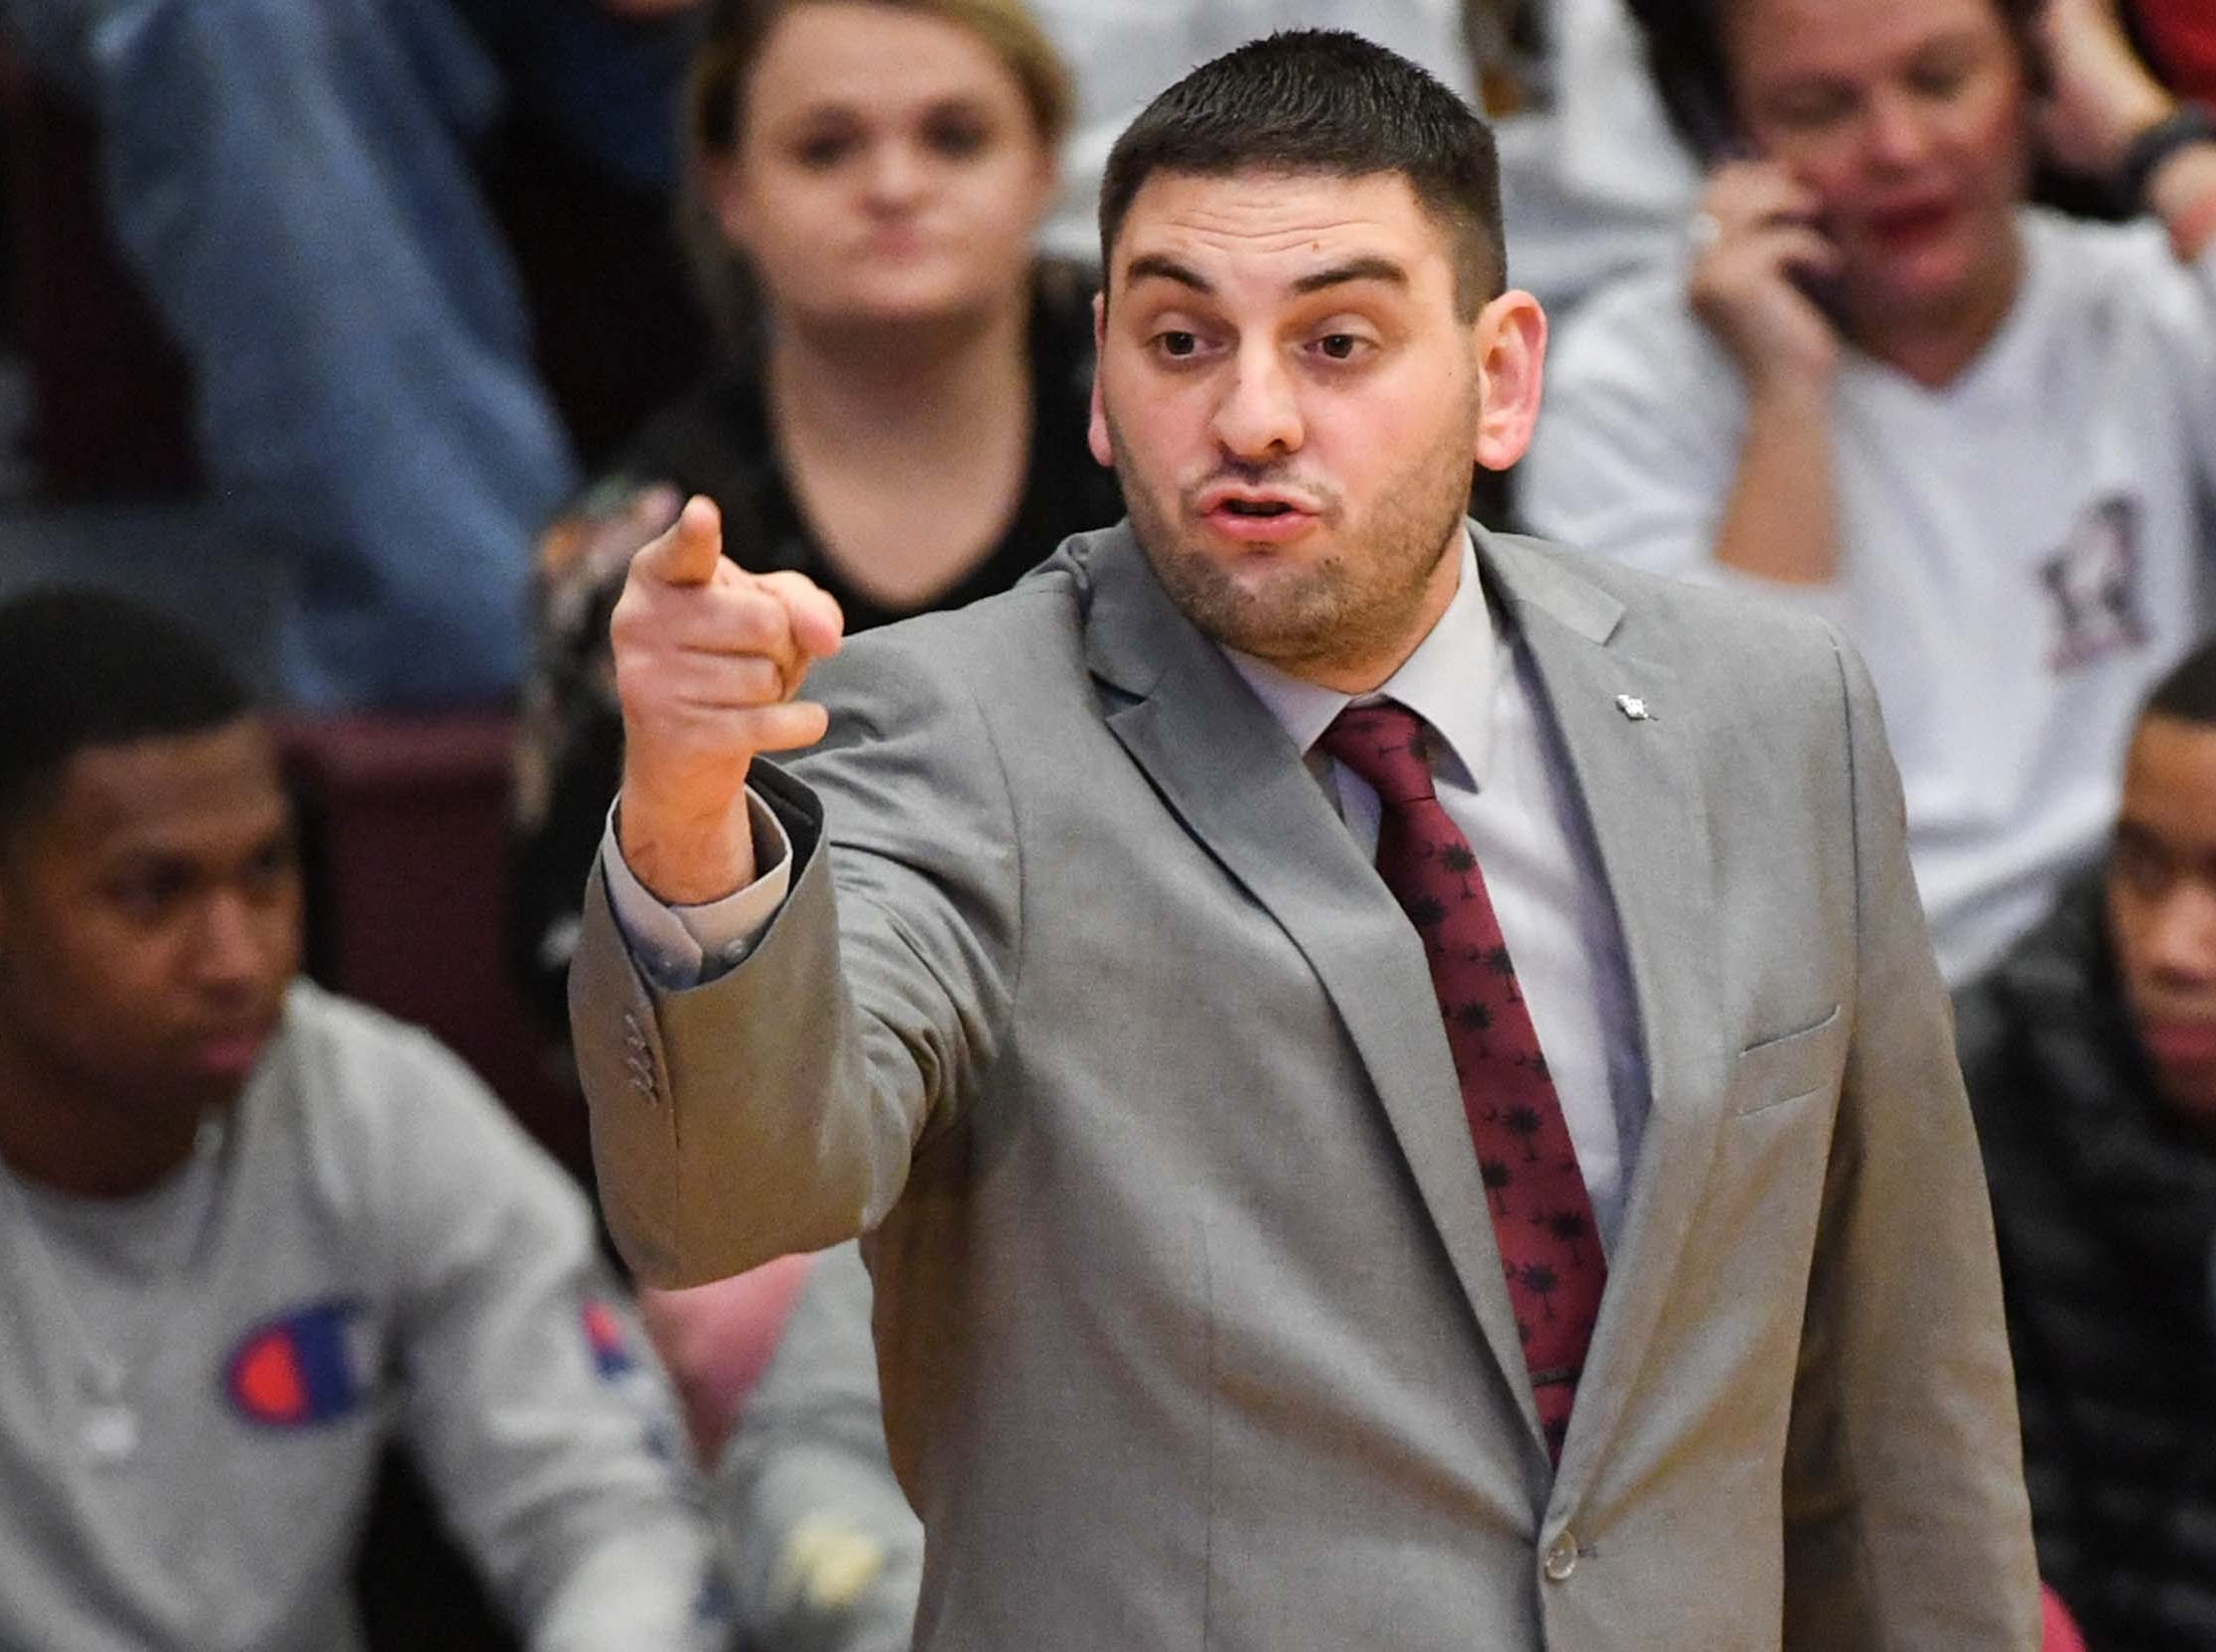 Westside coach Nick Agnello during the first quarter at Westside High School in Anderson on Friday.